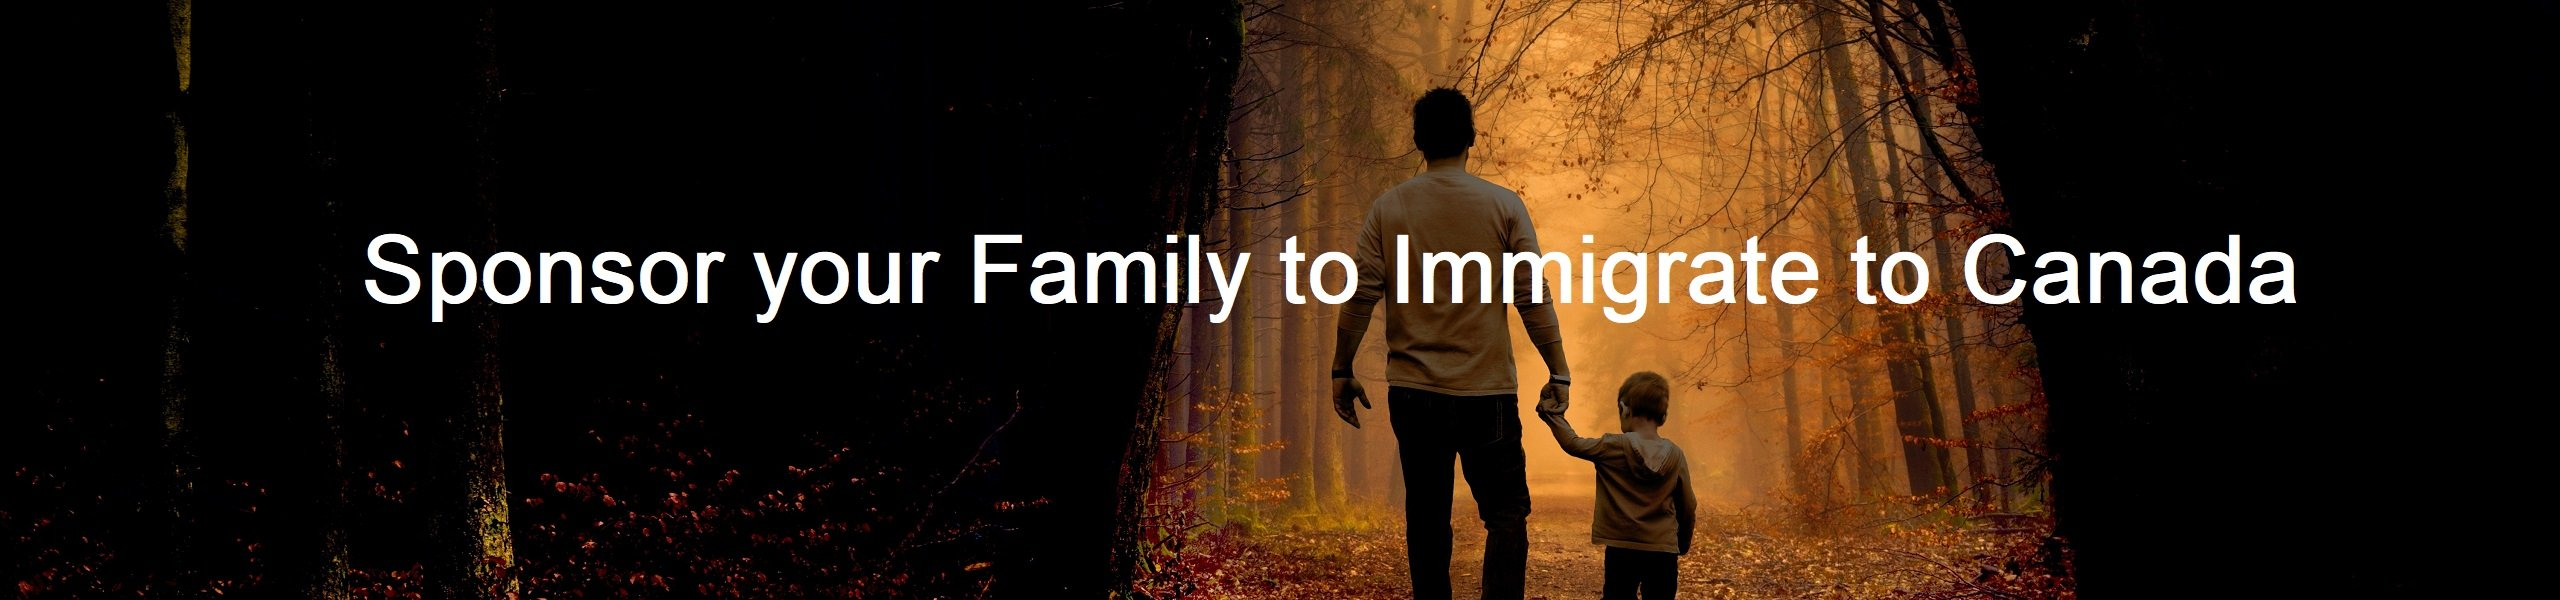 Sponsor Your Family to Immigrate to Canada - Turningstone Immigration Consulting